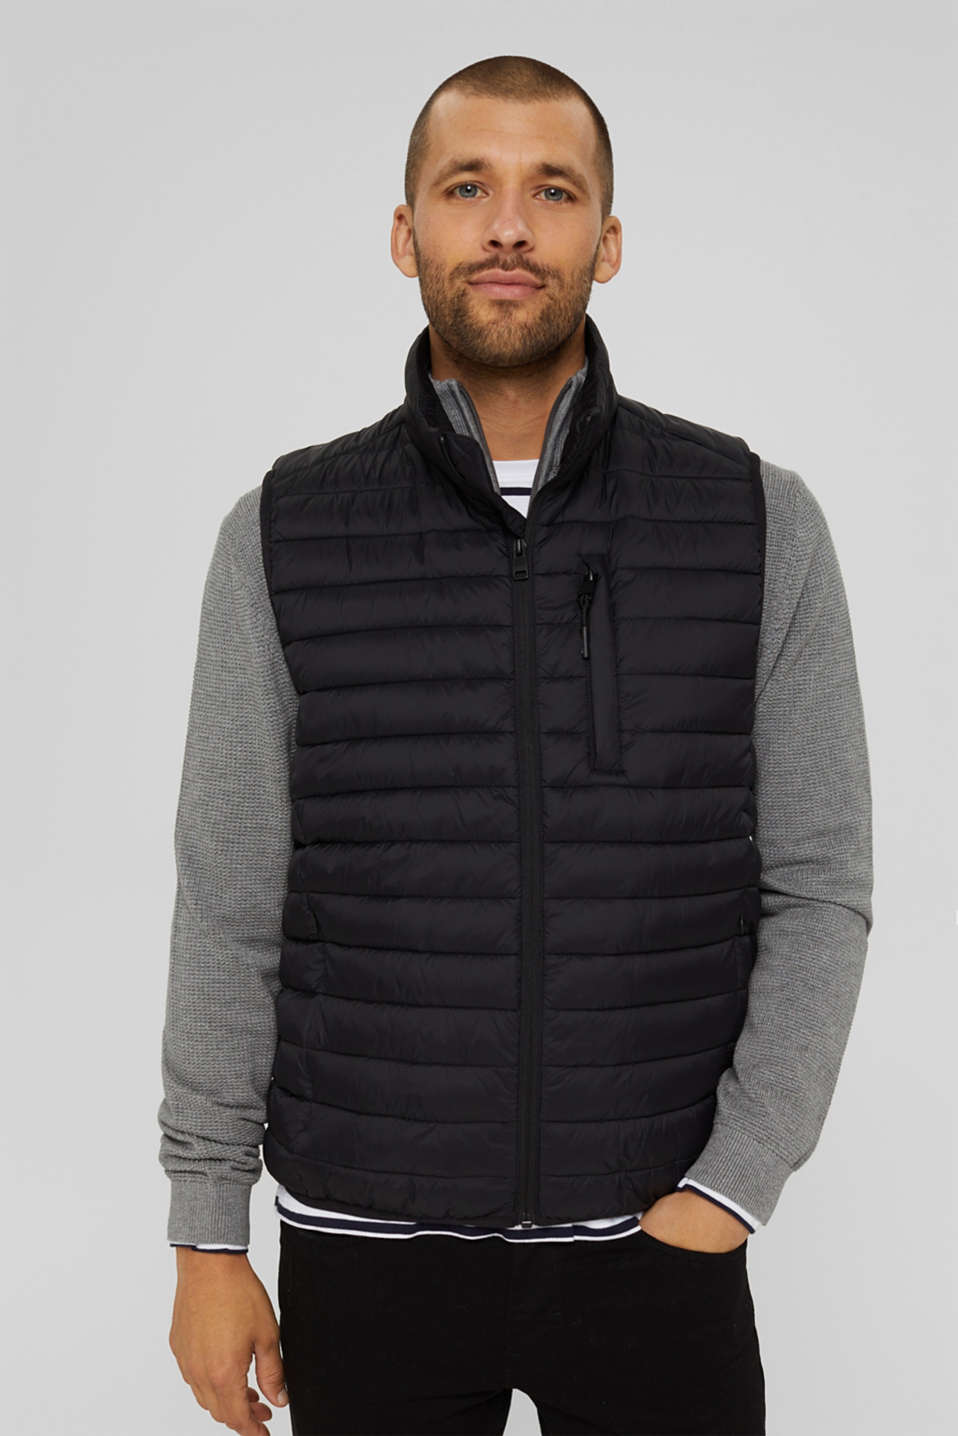 Esprit - Bodywarmer 3M™ Thinsulate™